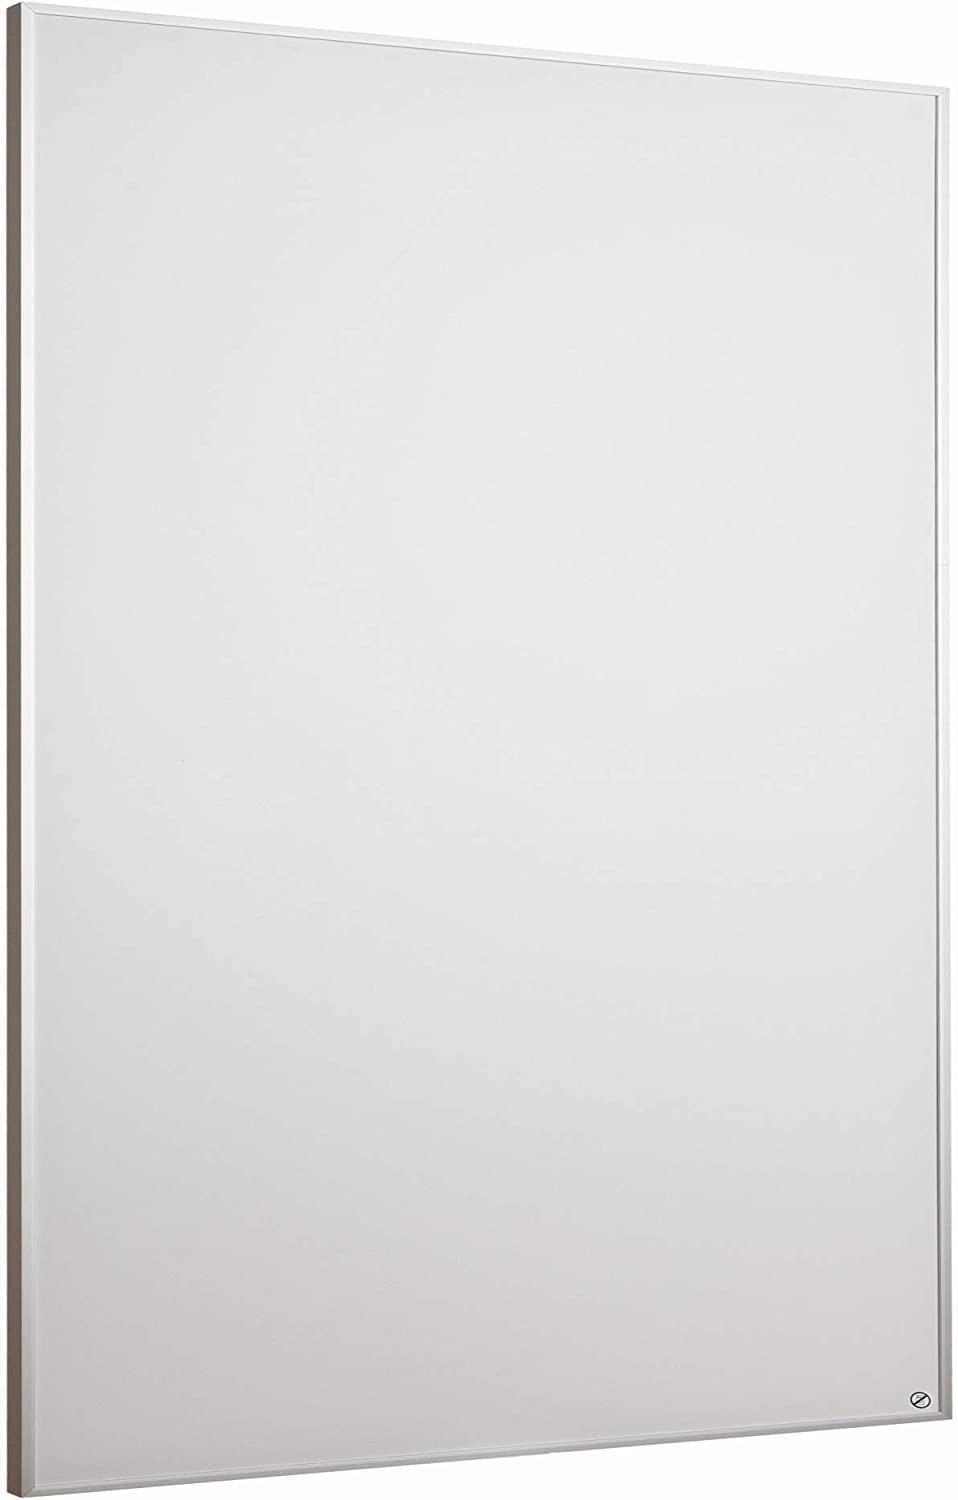 Wexstar WS-6WUS Infrared Panel Heater 600W White